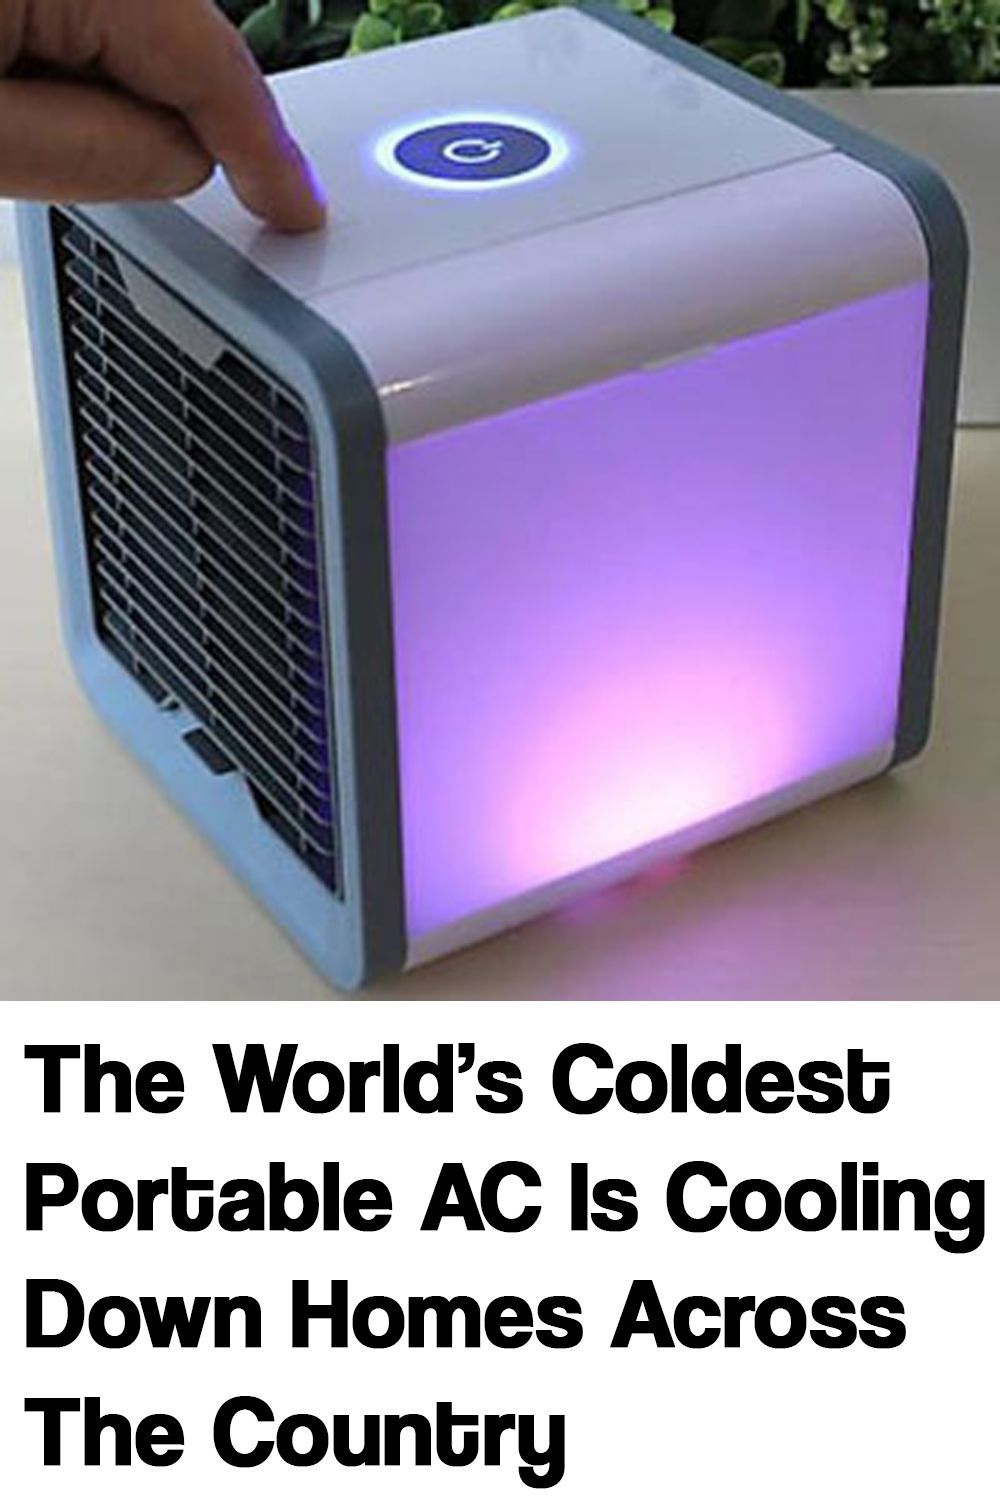 Here's Why You Shouldn't Use Your Car Air Conditioner in